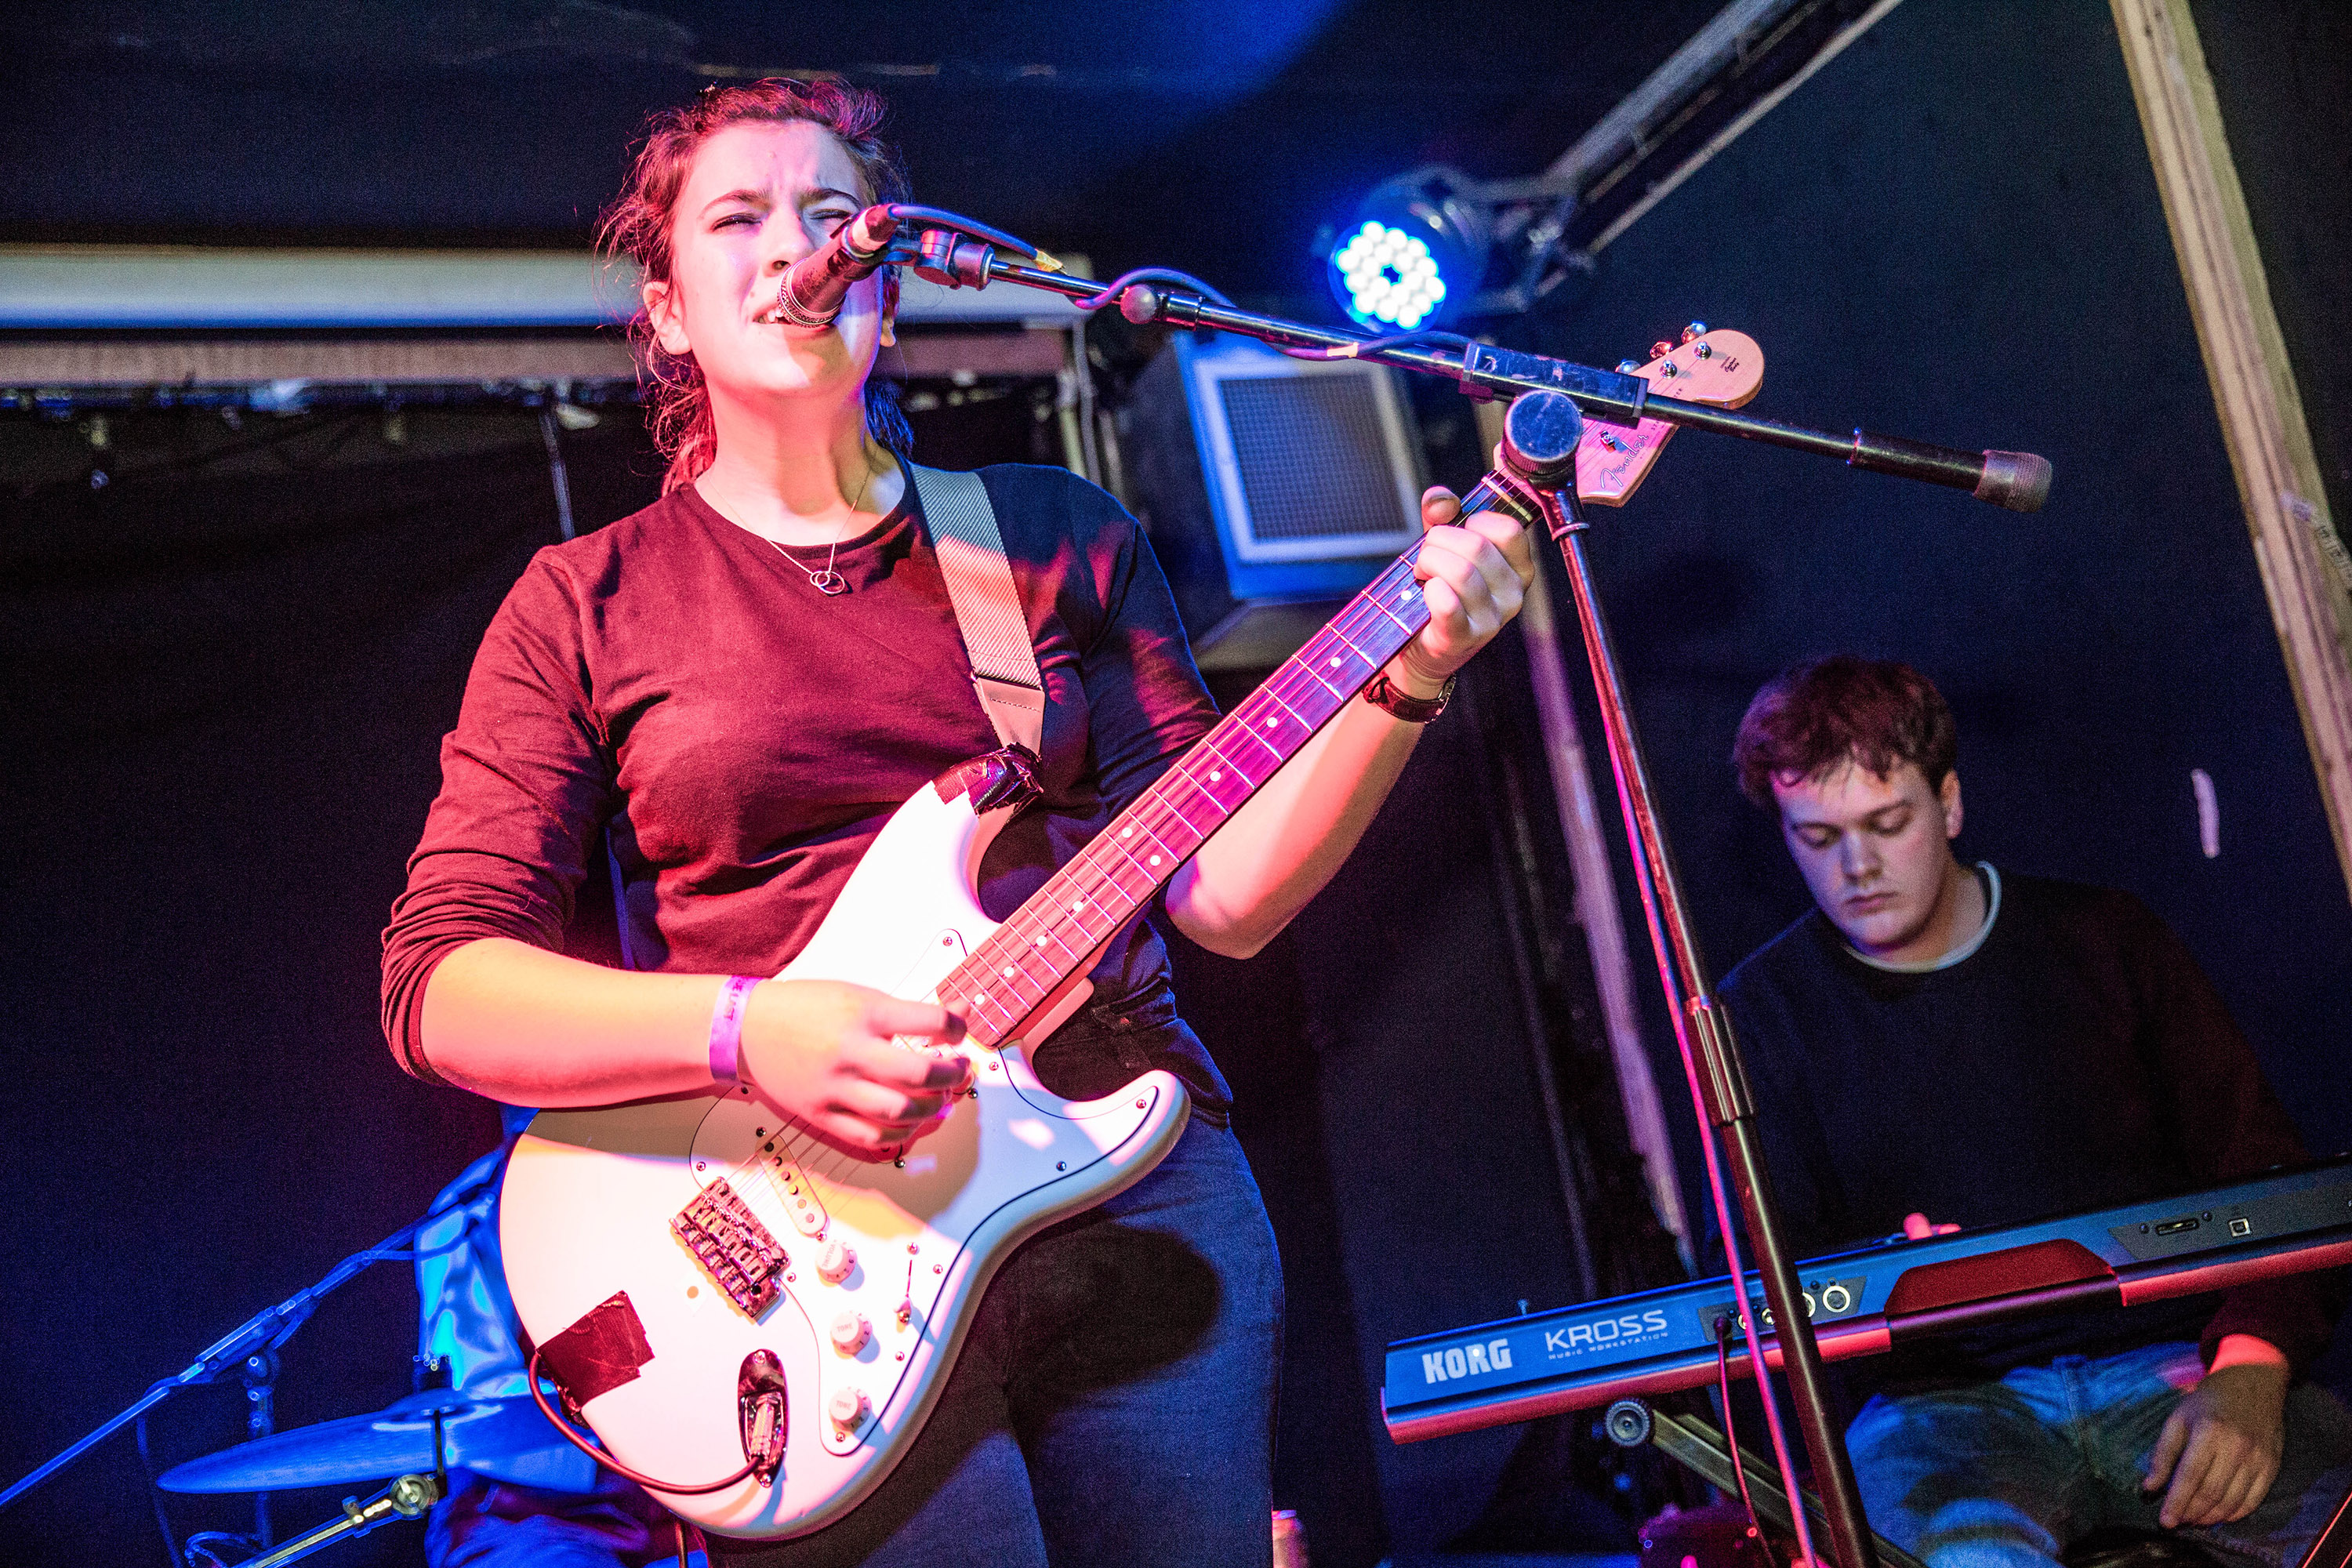 Swimming Tapes & Girl Ray opt for escapism at Hello 2017